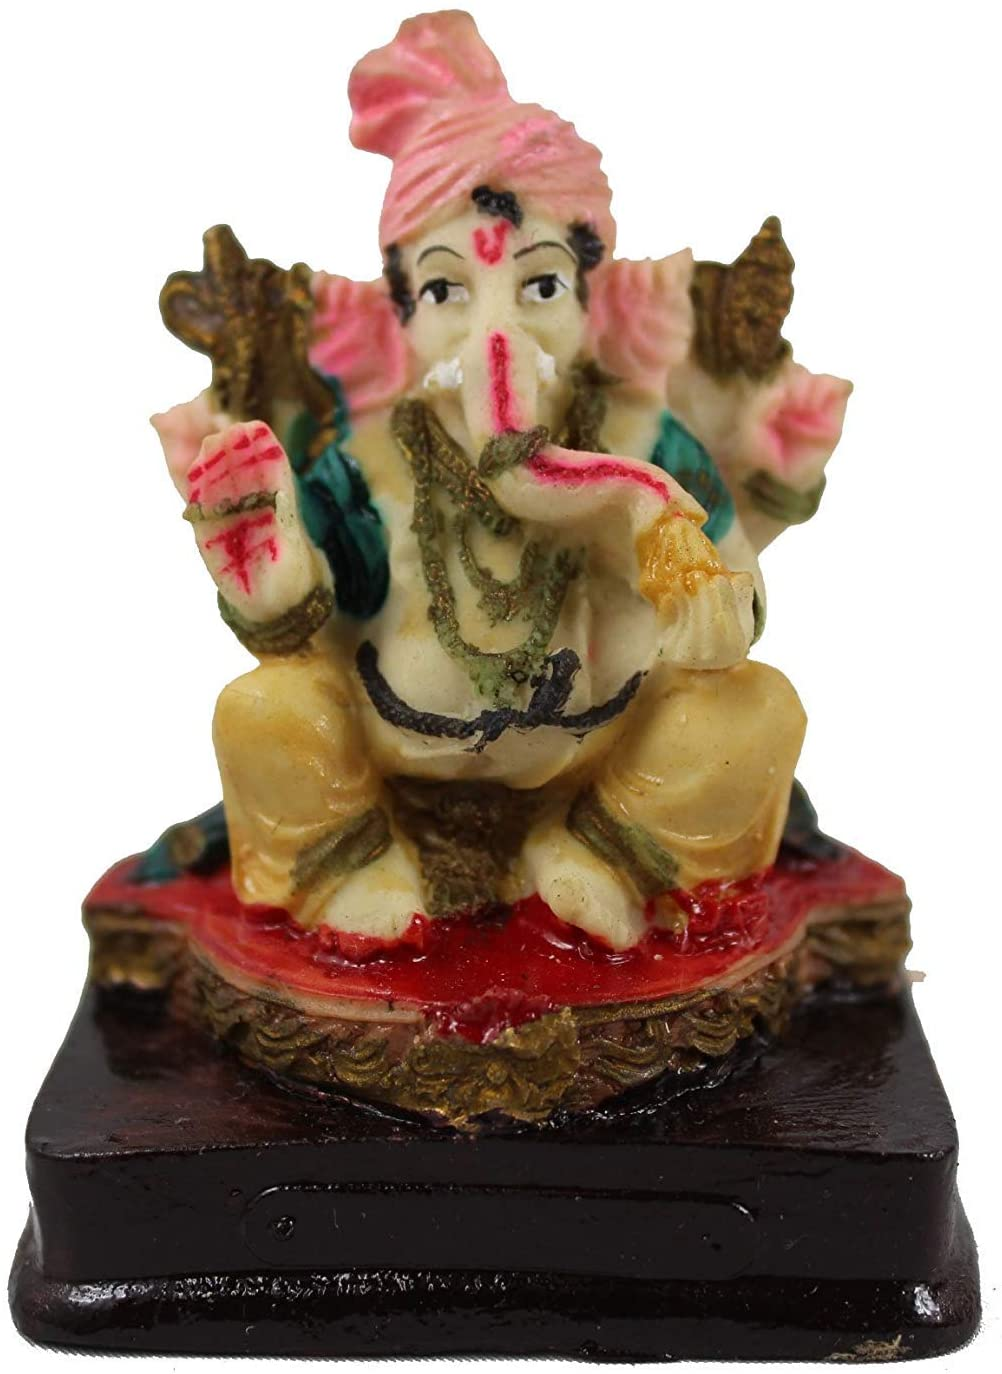 Creativegifts Ganesh Idol for Car Dashboard/Home/Office/Perfect Gift Item